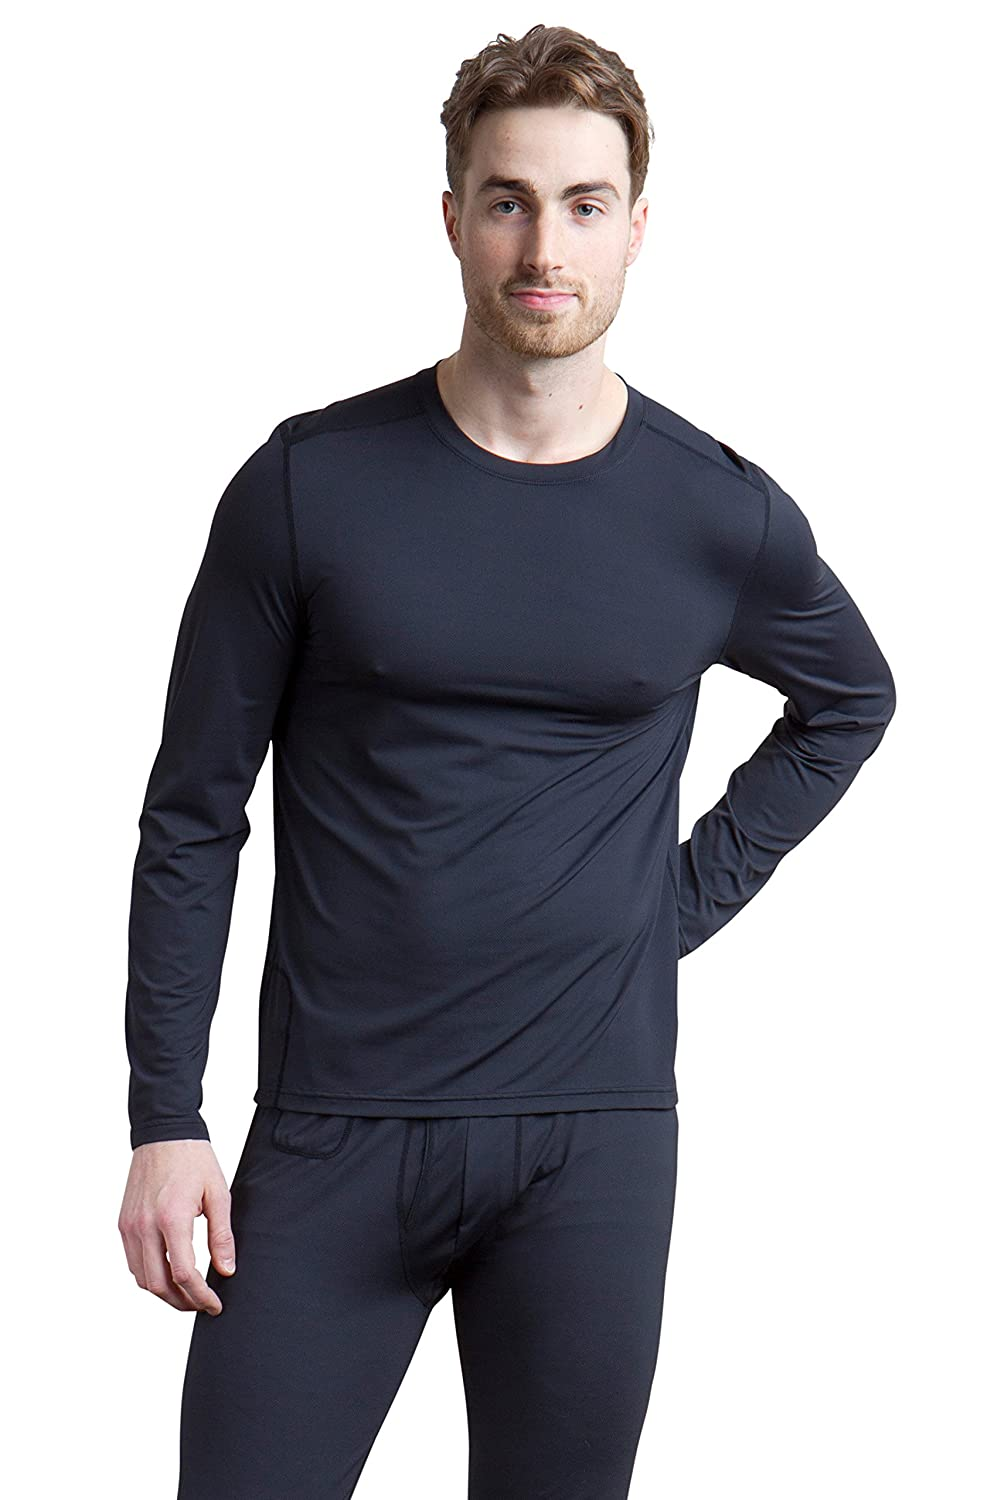 Exofficio Herren give-n-go Performance Base Layer Crew Shirt